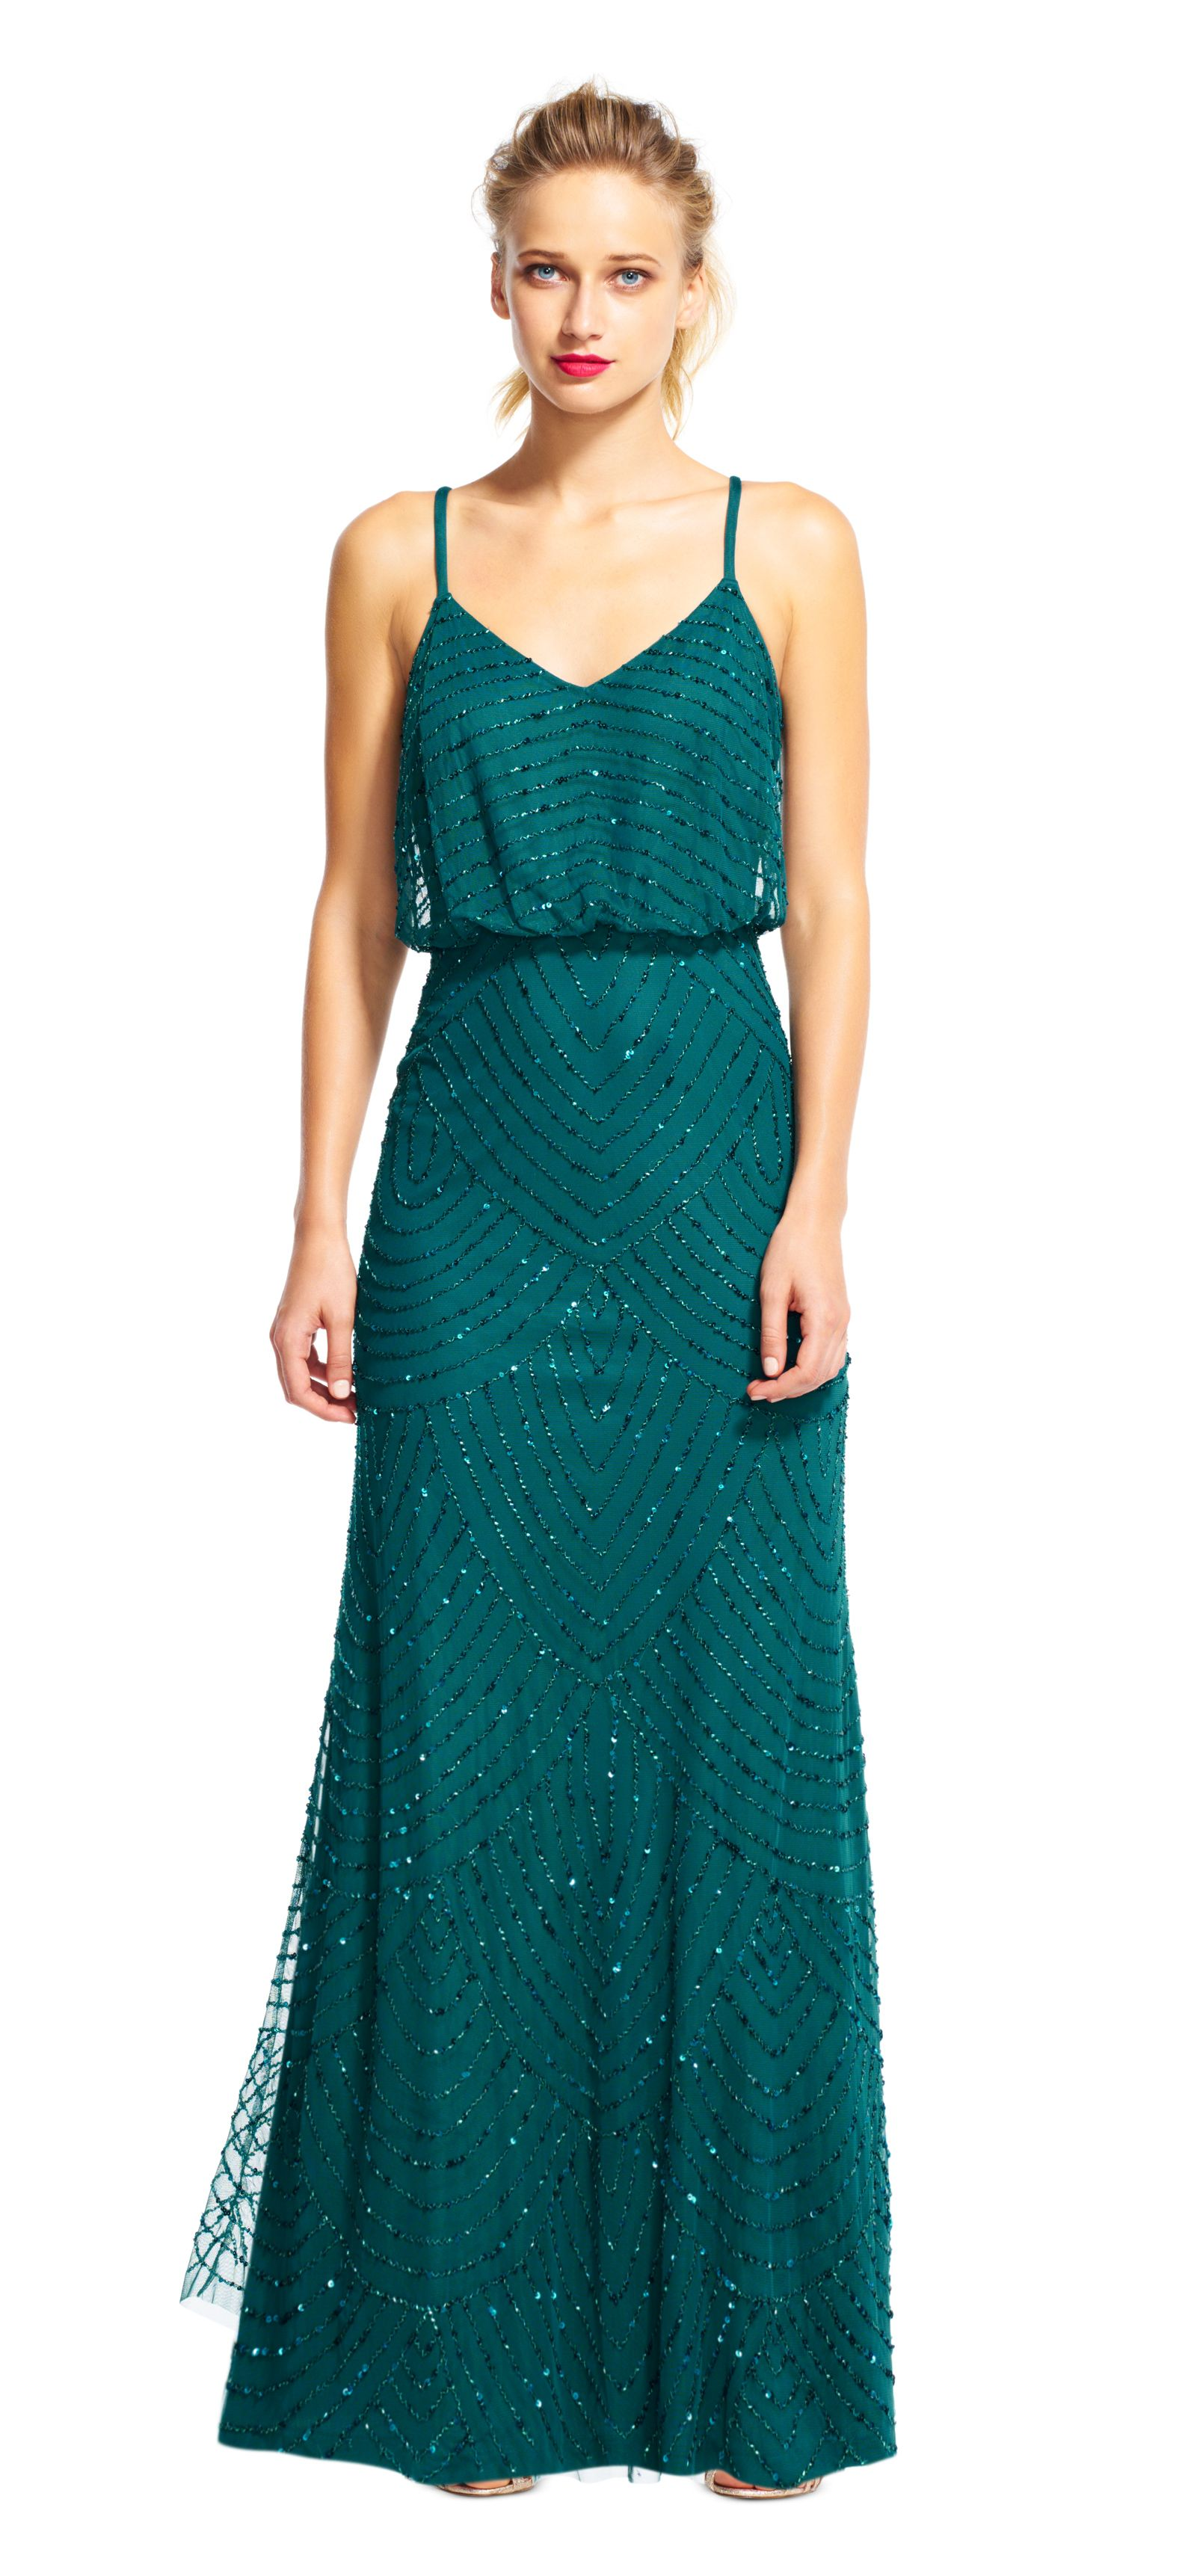 Art deco beaded blouson gown beautiful gowns hunter green and adrianna papell hunter green art deco blouson beaded gown a scalloped pattern of sparkling beads ombrellifo Image collections